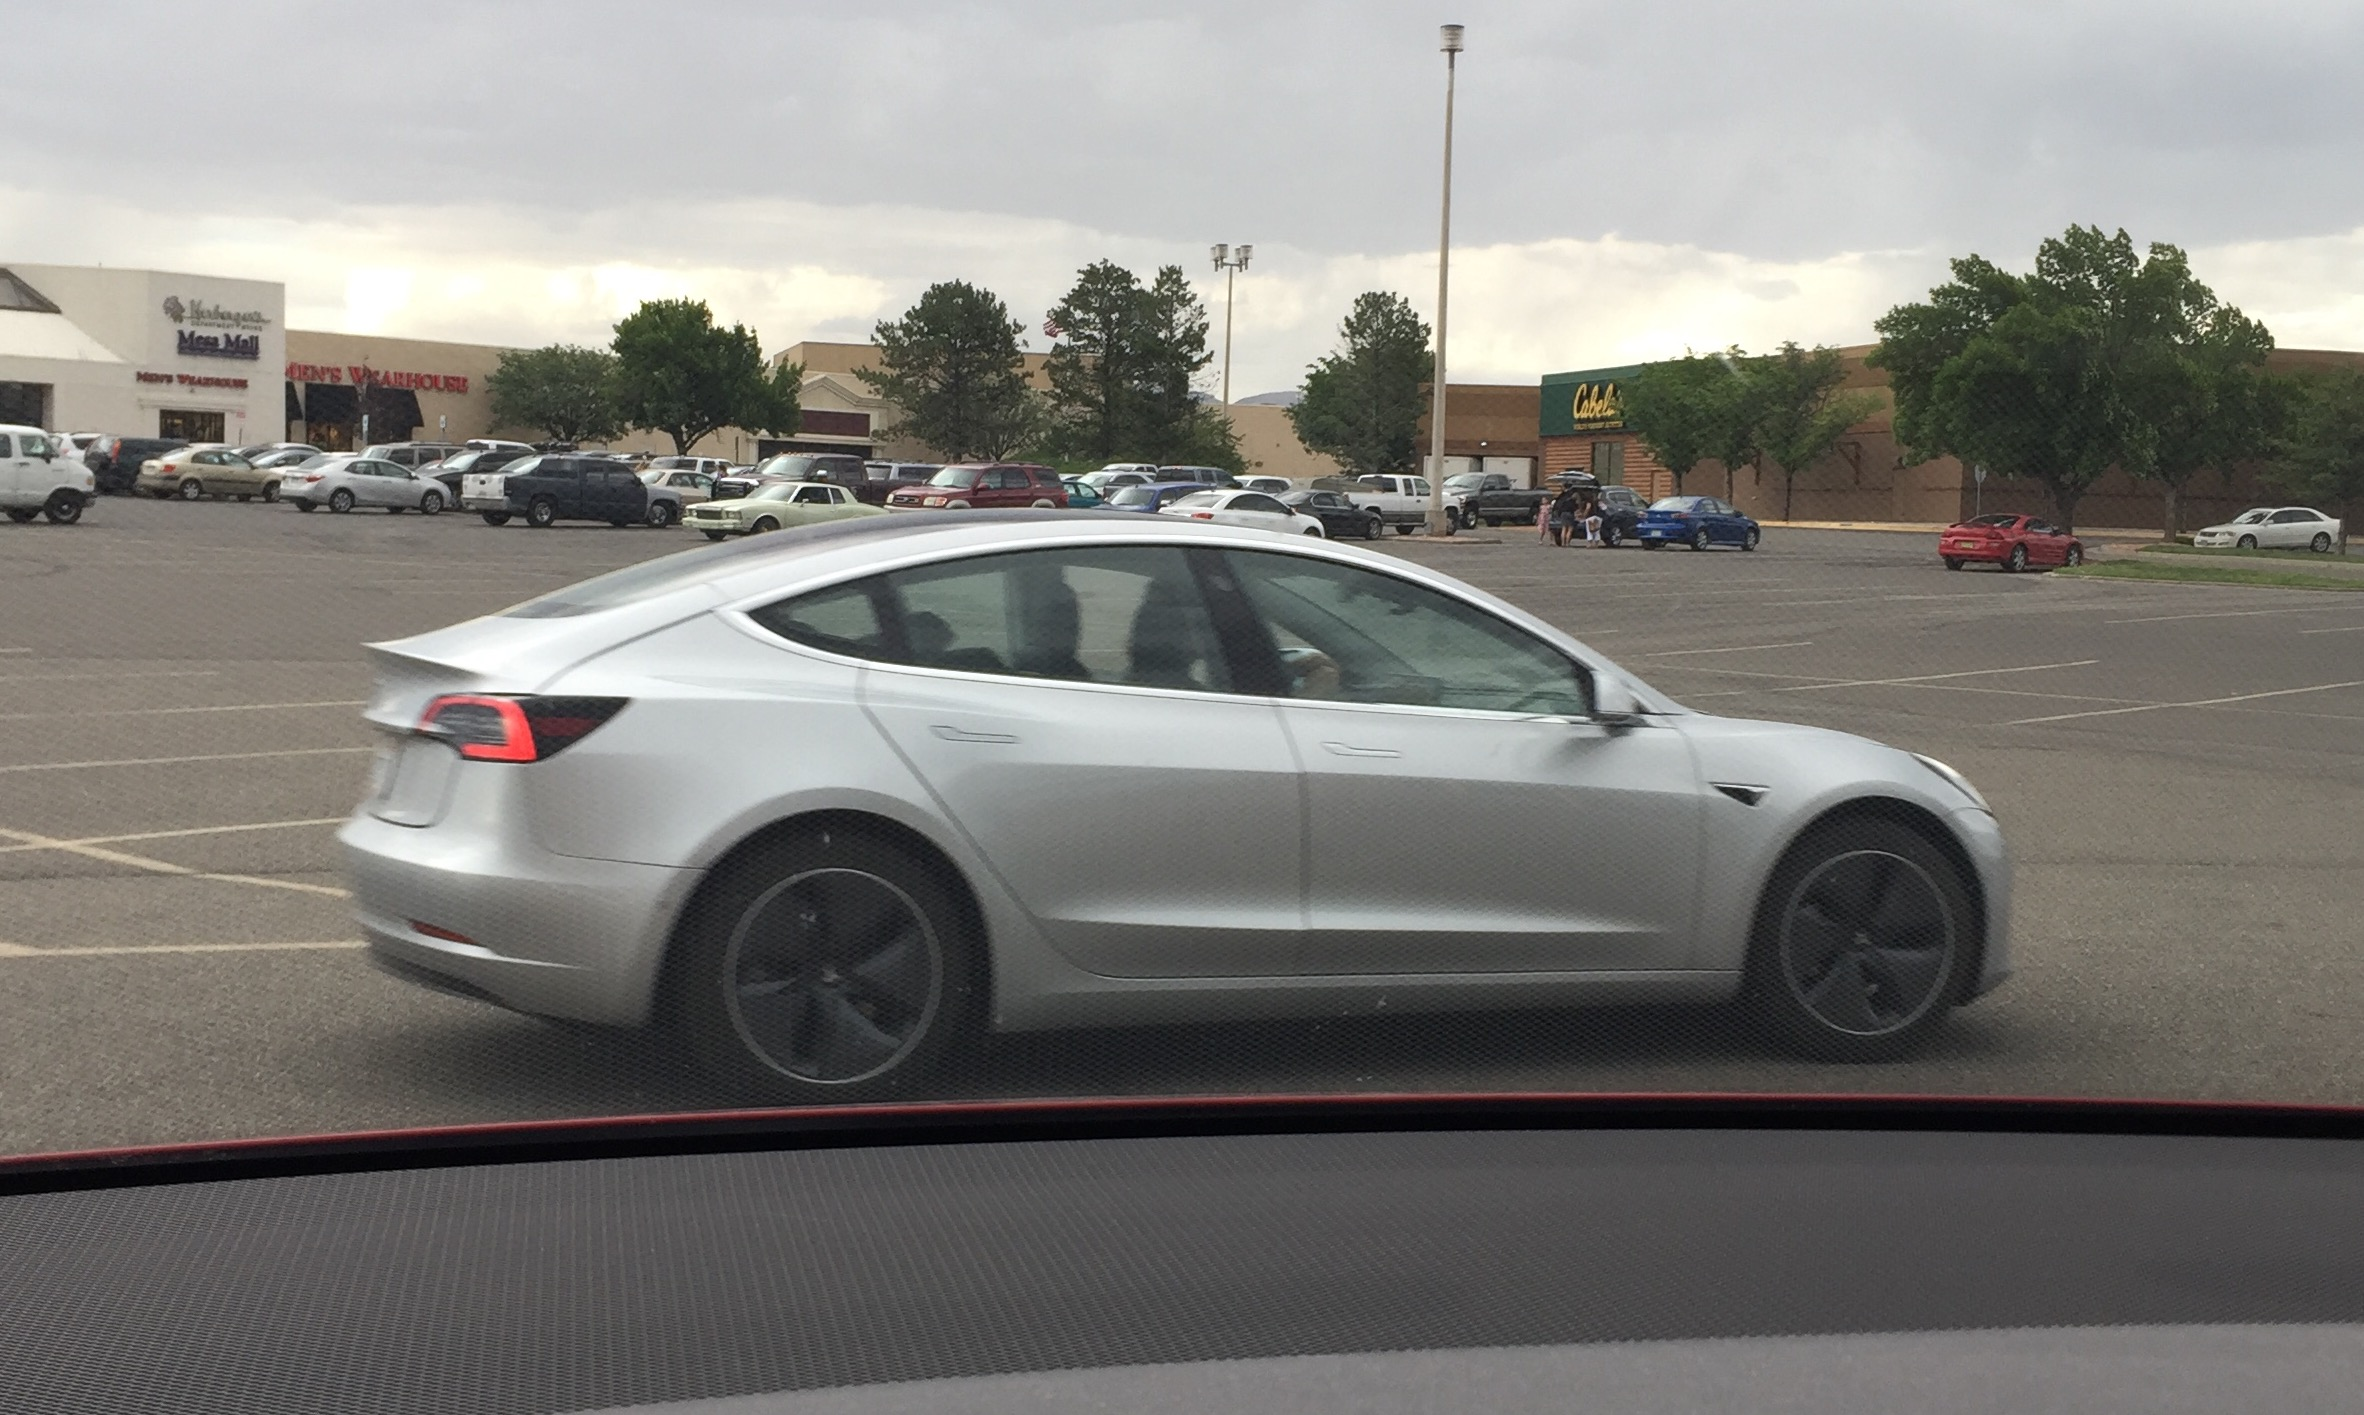 Tesla Model 3 engineer gives insights into driving experience